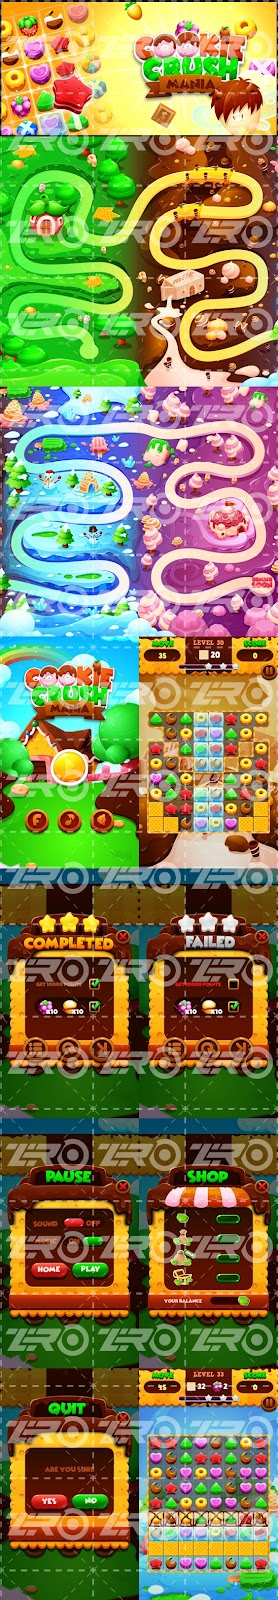 cookie mania game, crush mania game, crush game, mania game, cookie game, candy crush saga game, candy crush game, cookie free game, cookie game free, cookie crush mania game free, cookie crush mania free game, crush mania game free, crush mania free game, game graphic design, game UI design, game graphic UI design, mobile game graphic design, mobile game UI design, mobile game graphic UI design, mobile game graphic and UI design, crush game graphic, cookie crush game graphic, crush game UI design, cookie crush game UI design, crush mania game graphic, crush mania game UI, crush mania game graphic design, crush mania game UI design, cookie crush mania game graphic, cookie crush mania game UI, graphic design, game UI design, game graphic design, candy crush, cookie crush, toy blast 2, cookie yummy, mania legends, pop blast, blast it 2, bubble mania valentine, tap blast, blast monkey, cupcake mania games, cookie legend, jelly splash saga, pop jewel mania, super nanny mania, jelly saga games, block crush mania, cookie cookie clicker, fruit blast, monkey blast, jelly saga candy crush, cookie jam cookie jam, candy block monster, fruit mania 2, candy crush jelly soda saga, cookie swirl c games, sugar blast, yummy blast, cookie smash games, update candy crush jelly saga, mania games for free, jelly bust, cookie crush 2, blossom blast saga update, cube blast, star mania free, social mania, candy connect, cookie boom, candy crush Christmas, candy fever, blast monkeys, cookie clicker 2, like candy crush, cookie mania games, candy crush cookie jam, cookie clicker 3, jelly queen saga, bloom blast saga, fruit bunny mania, cookie clicker collector, games related to candy crush, candy crush bear, free toy blast, kids candy crush, bubble mania free, cookie blast, blossom blast saga king, can candy crush, halloween candy mania, candy crush saga guide, pop mania, cookie jam 2, follow mania, sugar crush jelly, cookie family, cake blast, cookie star 2, viber games, blossom saga blast, blossom mania, jelly candy crush saga, fruit candy crush, cookie jam free game, candy jelly crush saga, candy crush theme, cookie cooking games, jewel mania free, cookie farm, the new candy crush, fish mania game, candy frozen mania, cookie tapper, blossom blast saga free, go to candy crush, okay google candy crush, block puzzle mania 2016, candy crush original game, pastry mania, juice blast, candy legend, candy crush jelly soda, candy jewel, jewel pop mania, candy crush type games, cookie star, free toy blast game, candy blitz, magic gems jewels mania, cookie tap, gem mania, bloom blast, candy crush for kids, candy crush jelly saga cheats, blossom crush mania, jam cookies, free cookie games, new candy games, candy pic, quiz mania, games like candy crush saga, tetris mania, candy crush soda jelly, rock mania, candy crush jam, candy star 2, candy crush jelly saga king, ocean maniafruits mania game, star mania, blast it, photo mania app, game cookies, candy block puzzle, candy crush deluxe, candy crush like games, candy line, candy smash game, yummy blast mania, games like cookie jam, cookie mania 2, jelly queen candy crush, cookie crush jam, cookie jam saga, candy match, frozen frenzy mania, block blast, charm mania, all candy games, garden mania 2, candy jam blast, cookie jam free, garden mania 3, crash mania, toy crush, candy crush candy crush candy crush, the cookie game, balloon mania, cookie blast 2, candy crush original, candy crush 3, new candy crush saga, candy sweet blast, candy deluxe, yummy mania, candy candy crush, candy splash, cookie click, gummy blast, candy pics, amazing candy, candy crush saga facebook, candy crush saga on facebook, jelly blast free game, jewel blast mania, candy mania blast, blossom blast saga game, cute candy blast, candy jelly crush, cookie crush saga, cookie clicker, free games cookie jam, jelly blast saga, candy crush sugar, candy valley, magic mania, candy island, cookie crush games, candy dash, candy crush 2016, candy block, catch the candy, candy café, open candy crush, jelly splash, candy boom, color mania, cupcake mania, candy crush s, candy frenzy 3, baby mania, free games like candy crush, sweet candy games, find candy crush, forest mania, candy crazy, games mania, candy fantasy, garden mania, candy photos, candy crush saga king, candy crush jelly saga game, candy shoot, candy hero, candy crush new, blast games, cookies app, candy crush saga update, candy crush saga 2, free cookie jam game, candy crush the game, all candy, jelly crush mania, update candy crush saga, candy crunch game, blossom blast, jelly blast mania, candy smash, fruit mania, candy photo, jewel mania game, nanny mania game, cookie smash, candy journey, candy c, all candy crush games, jelly mania, candy cr, candy mania free game, candy frenzy game, free cookie jam, candy mania, fruit crush game, candy, candy jelly saga, photo candy, cookie mania, mania games, candy crush jelly queen, sweet candy mania, sweet cookie blast, crazy candy, jewel mania, toy blast game, ultimate jewel, solitaire mania, candy crush online, candy crush saga jelly, video mania, new cand, candy frenzy, candy crush saga play online, jewel blast, saga candy crush, download candy crush jelly, jelly blast candy trip, candy star, candy crush android, games similar to candy crush, soda candy crush, candy puzzle, nanny mania, tractor mania 2, candy crush saga, jelly crush saga, cookie jam game free, pop candy, bubble mania, candy crush free app, candy jelly, candy crush jelly saga, jelly saga, jelly candy crush, candy crush saga free game, update candy crush, candy crush new game, candy crush jelly game, saga games free, candy crush mania, free candy games, bubble mania game, jelly crush, candy saga, candy crush for free, cake mania game, cookie jam, bubble blast, bubble blast 2, candy crush jelly, fruit splash game, candy crush candy crush, play candy crush saga, install candy crush saga, play candy crush, cake mania free, block mania, cake mania 2, candy games free, candy crush 2, cookie jam cheats, candy crush game app, candy crush play, fruit crush, candy crush free, cake mania, candy crush saga game, candy crush jelly download, games like candy crush, games candy, farm mania, cookie crush, new candy crush game, game candy, new candy crush, candy crush saga free, free candy crush, puzzle mania, photo mania, candy crunch, free games candy crush, free candy crush saga, candy crush game, cookie jam game, candy crush, free candy, download candy crush saga, fruit candy, game candy crush, candy crush saga app, candy crush saga download, jelly candy, download candy crush, candy crush free games, free candy crush games, cookie games, candy games, candy crush download, candy crush app, candy crush games free, zombie blast, blossom blast game, candy blast game, jelly blast game, candy mania game, jelly blast, candy blast, candy blast mania, blossom blast saga, app design software , app designer, design an app, design apps, mobile app design, how to design an app, prototyping tools, ui design tools, app prototyping, android ui design tool, app design, app ui design, ux design tools, mobile app prototyping, scratch and sketch, mobile app designer, app prototype, ui design tutorial, learn to sketch, sketch software, app design course, designer app, how to design apps, how to design a app, best ui design, sketch web design, mobile app mockup, ui prototyping, sketch prototyping, free prototyping tools, ui prototyping tools, design mobile app, app prototype maker, sketch wireframe, mobile prototyping, scratch app, ux design tutorials, wireframe design tool, best mobile app design, how do you design an app, ios prototyping, how to design mobile apps, ui mockup tools, best app design, sketch program, sketch tutorial, how to sketch, design sketch, sketch tool, sketch design software, sketch file, sketch ui, mockup tool free, best design apps, learn how to sketch, design apps for mac, sketch app, how to draw apps, ui sketch, sketch mac, sketch 3 tutorial, designer sketches, sketch for mac, mac sketch, adobe sketch, app sketch, sketch ui kit, sketch design, ui online mobile app, drawing app for mac, sketch , free sketch, android sketch app, learn sketching, sketch app windows, sketch coupon, sketch free, sketch 3 coupon, sketching tutorials for beginners, sketch app for iphone, sketch ux, ios drawing app, mac drawing app, mobile sketch, sketch work, drawing app mac, ui kit sketch, how to use sketch, sketch app templates,